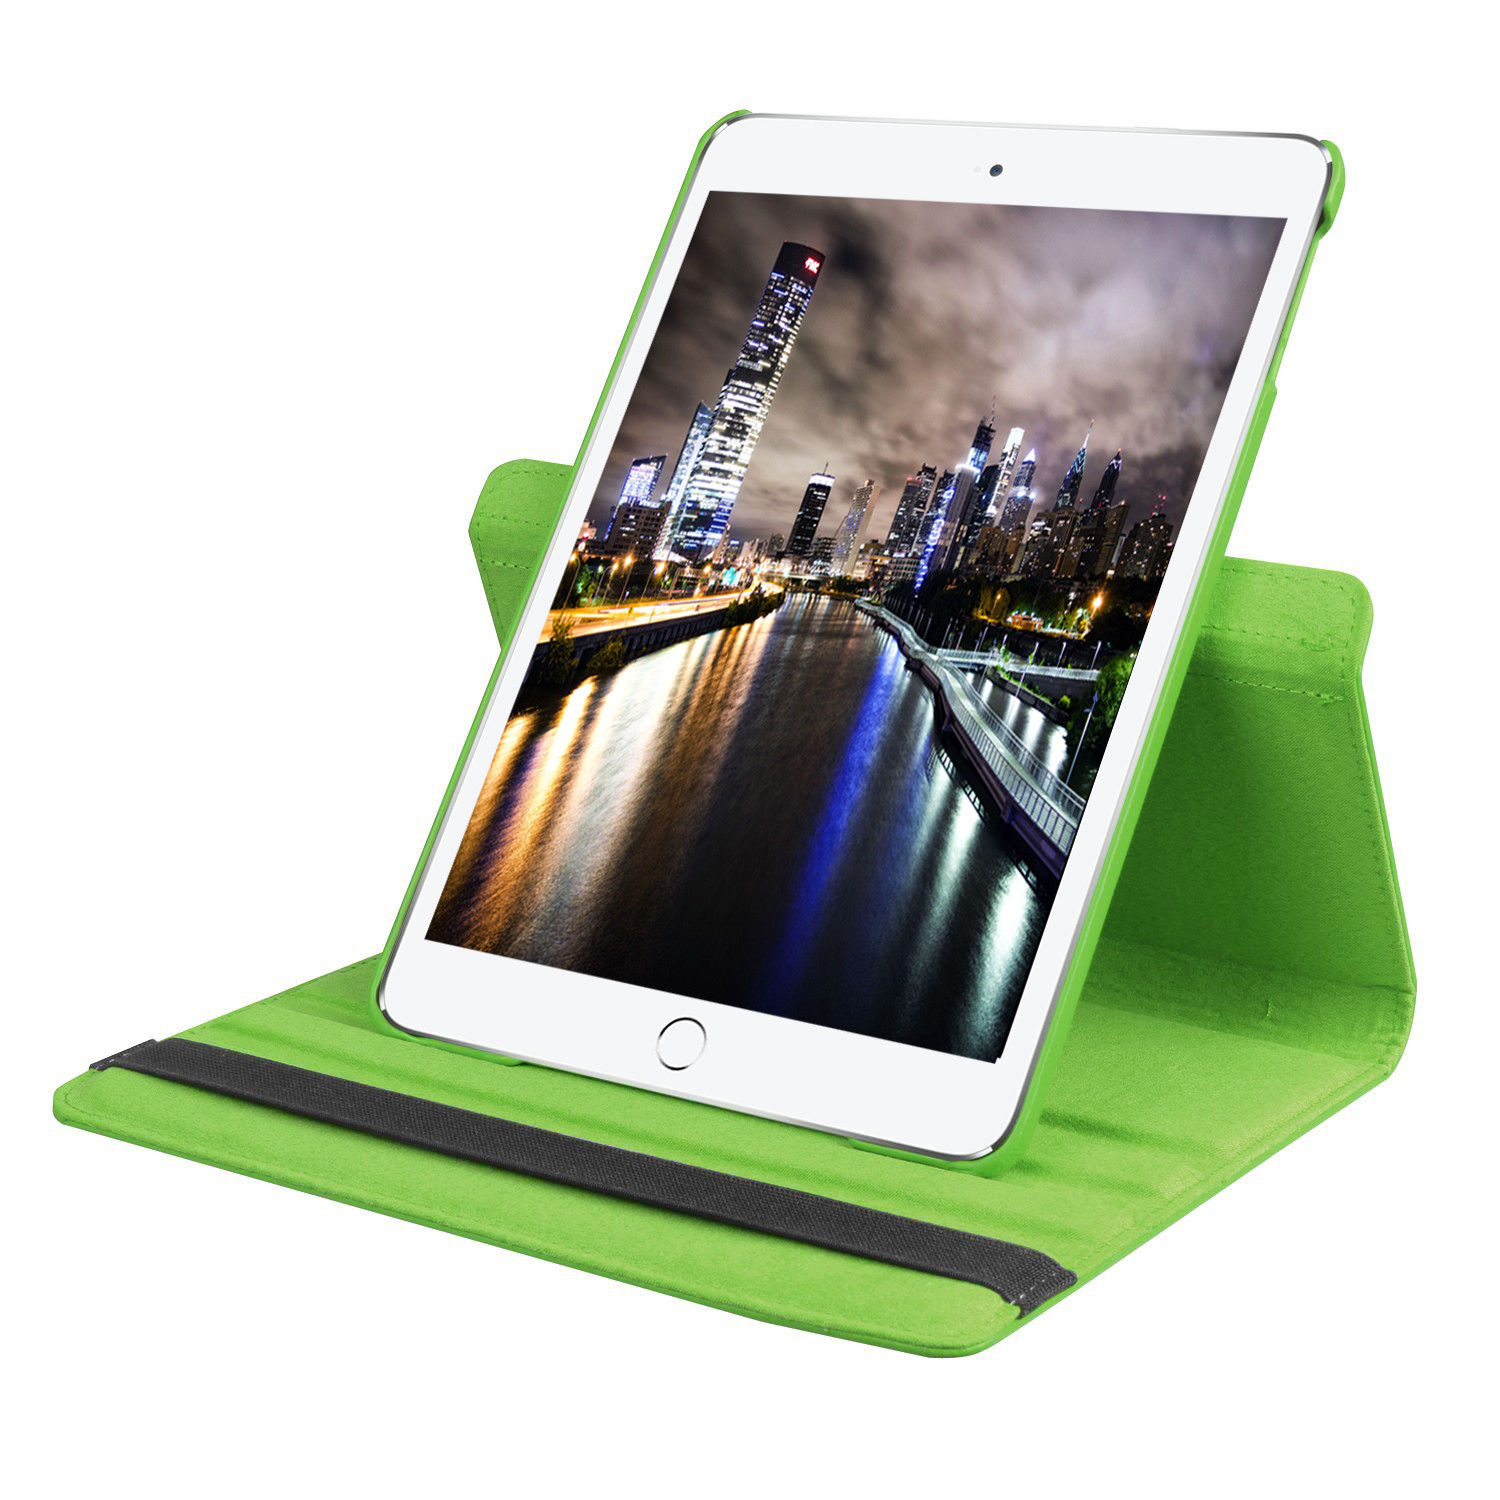 Custodia-per-Apple-iPad-Pro-2017-iPad-Air-3-10-5-Smart-Cover-Case-Custodia-Protettiva miniatura 50